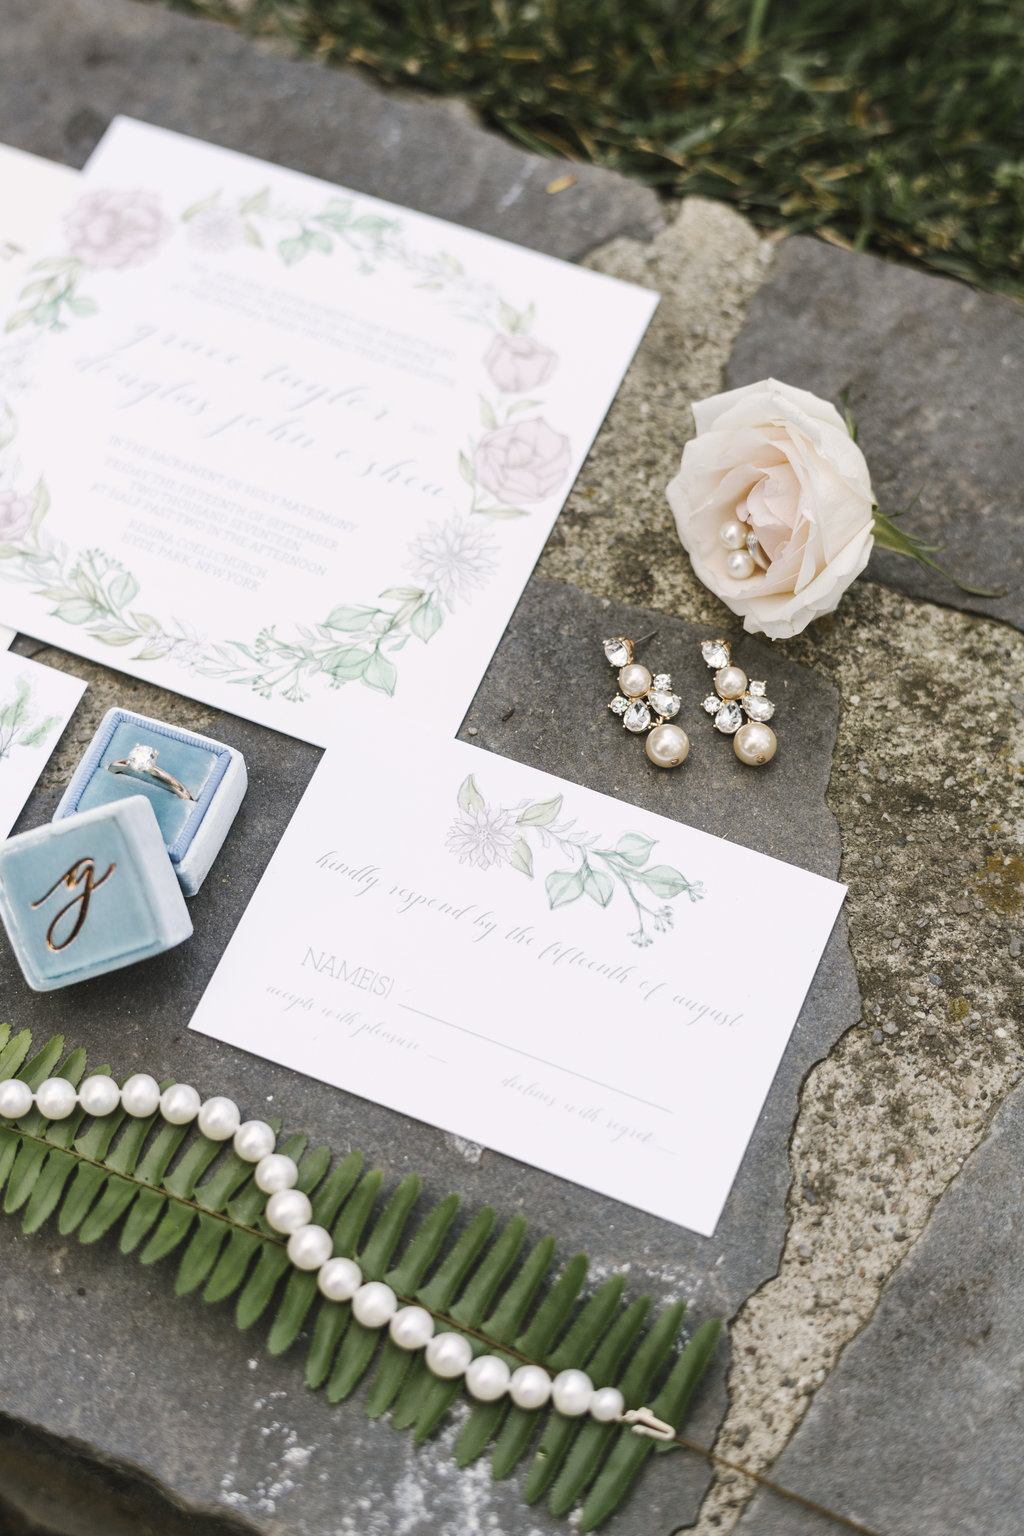 Coppola Creative Wedding Design _ Alicia King Photo14.jpg